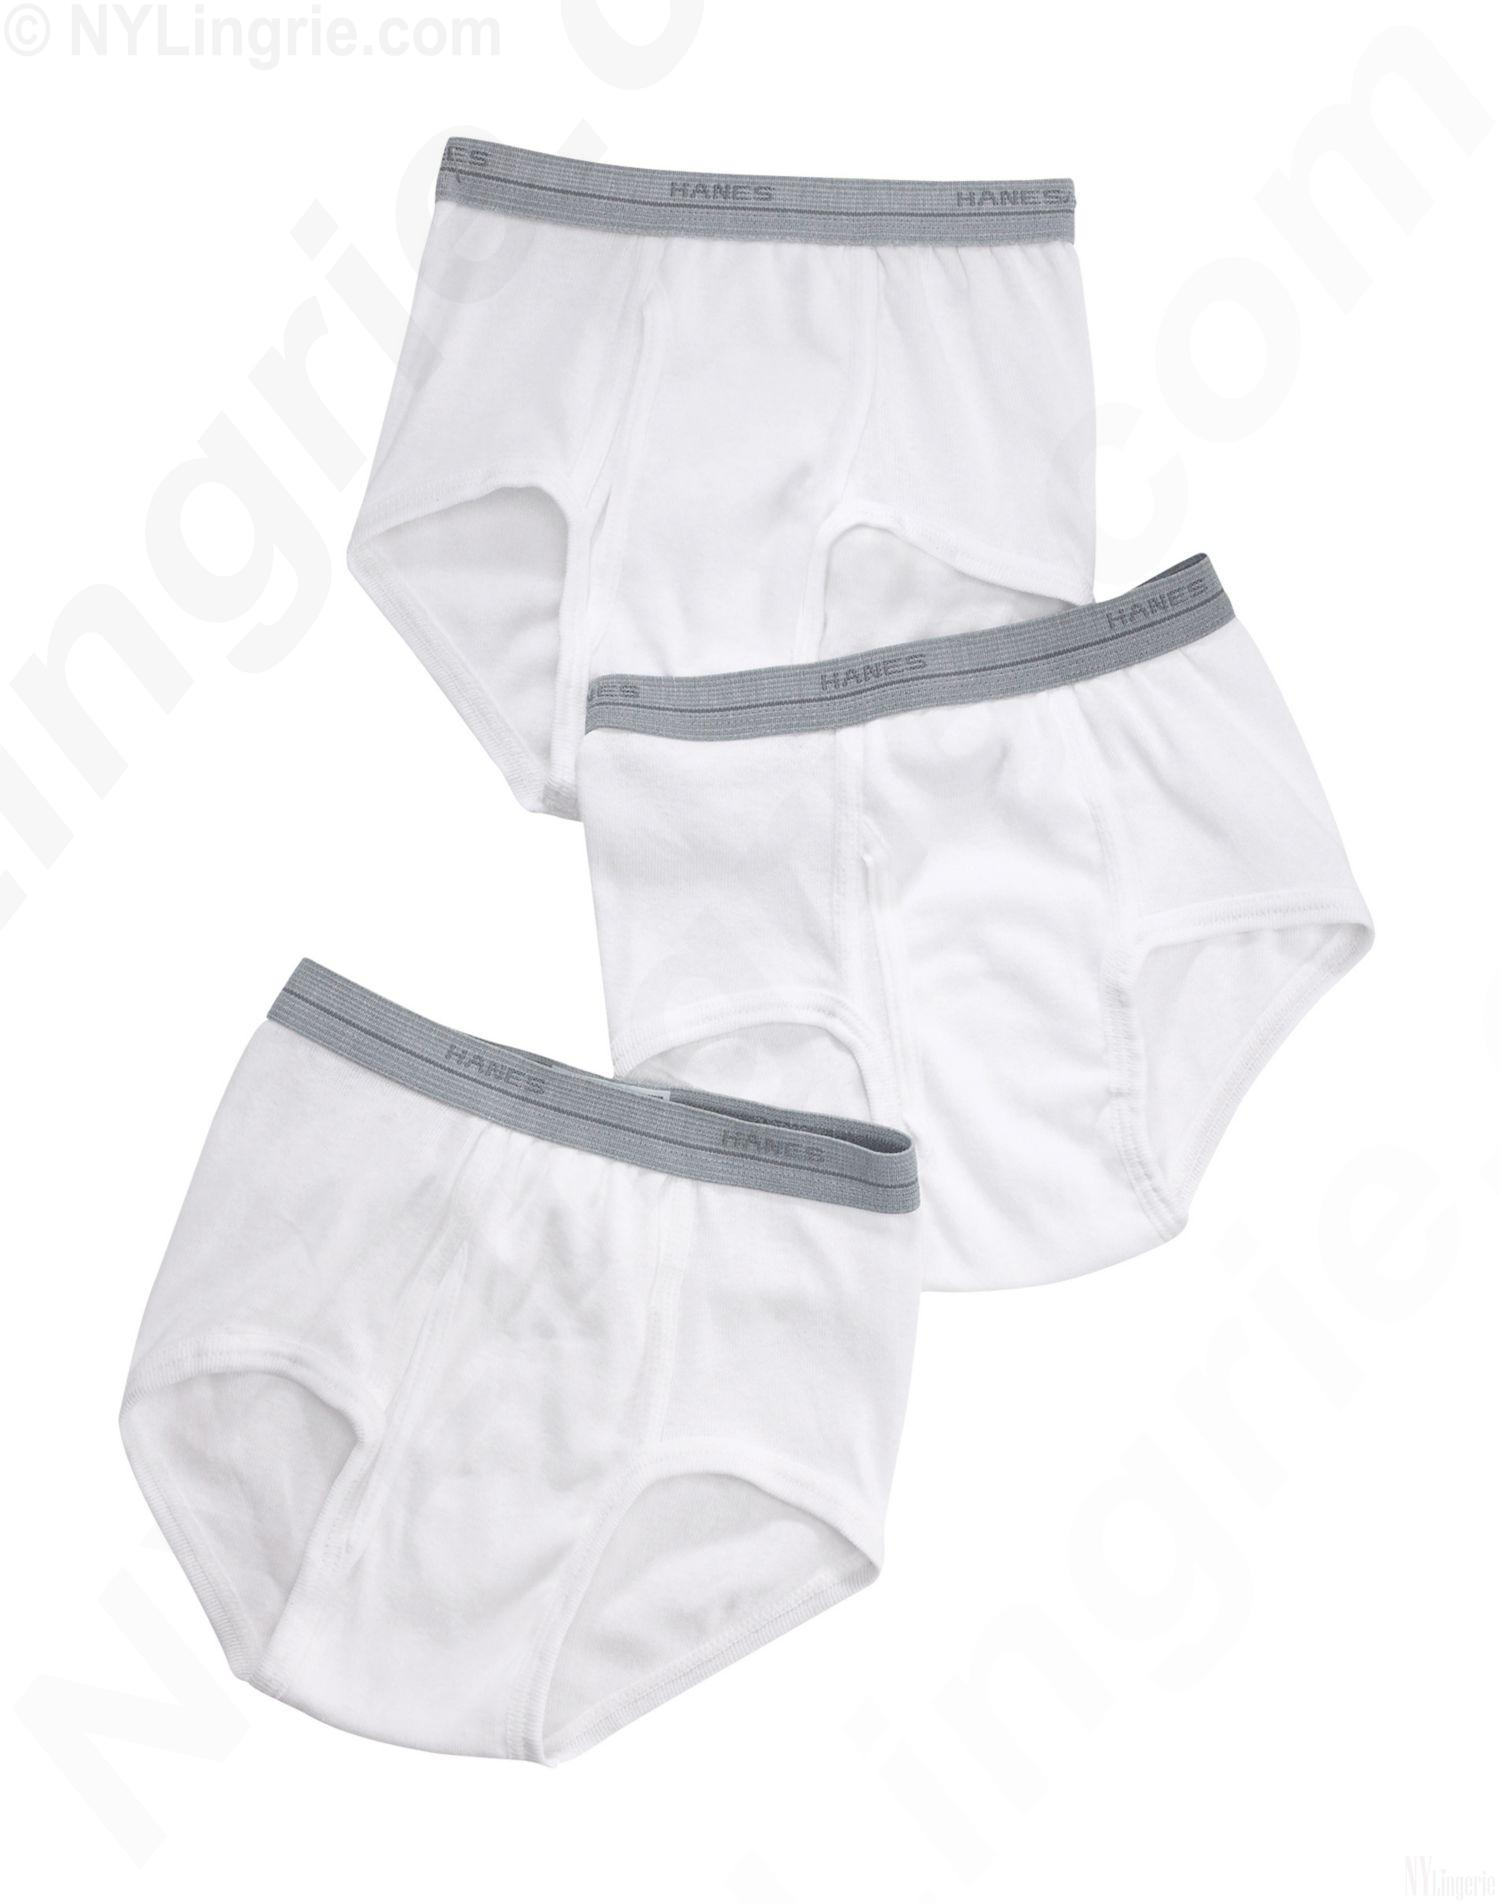 B252CL - Hanes Classics Boys White Brief